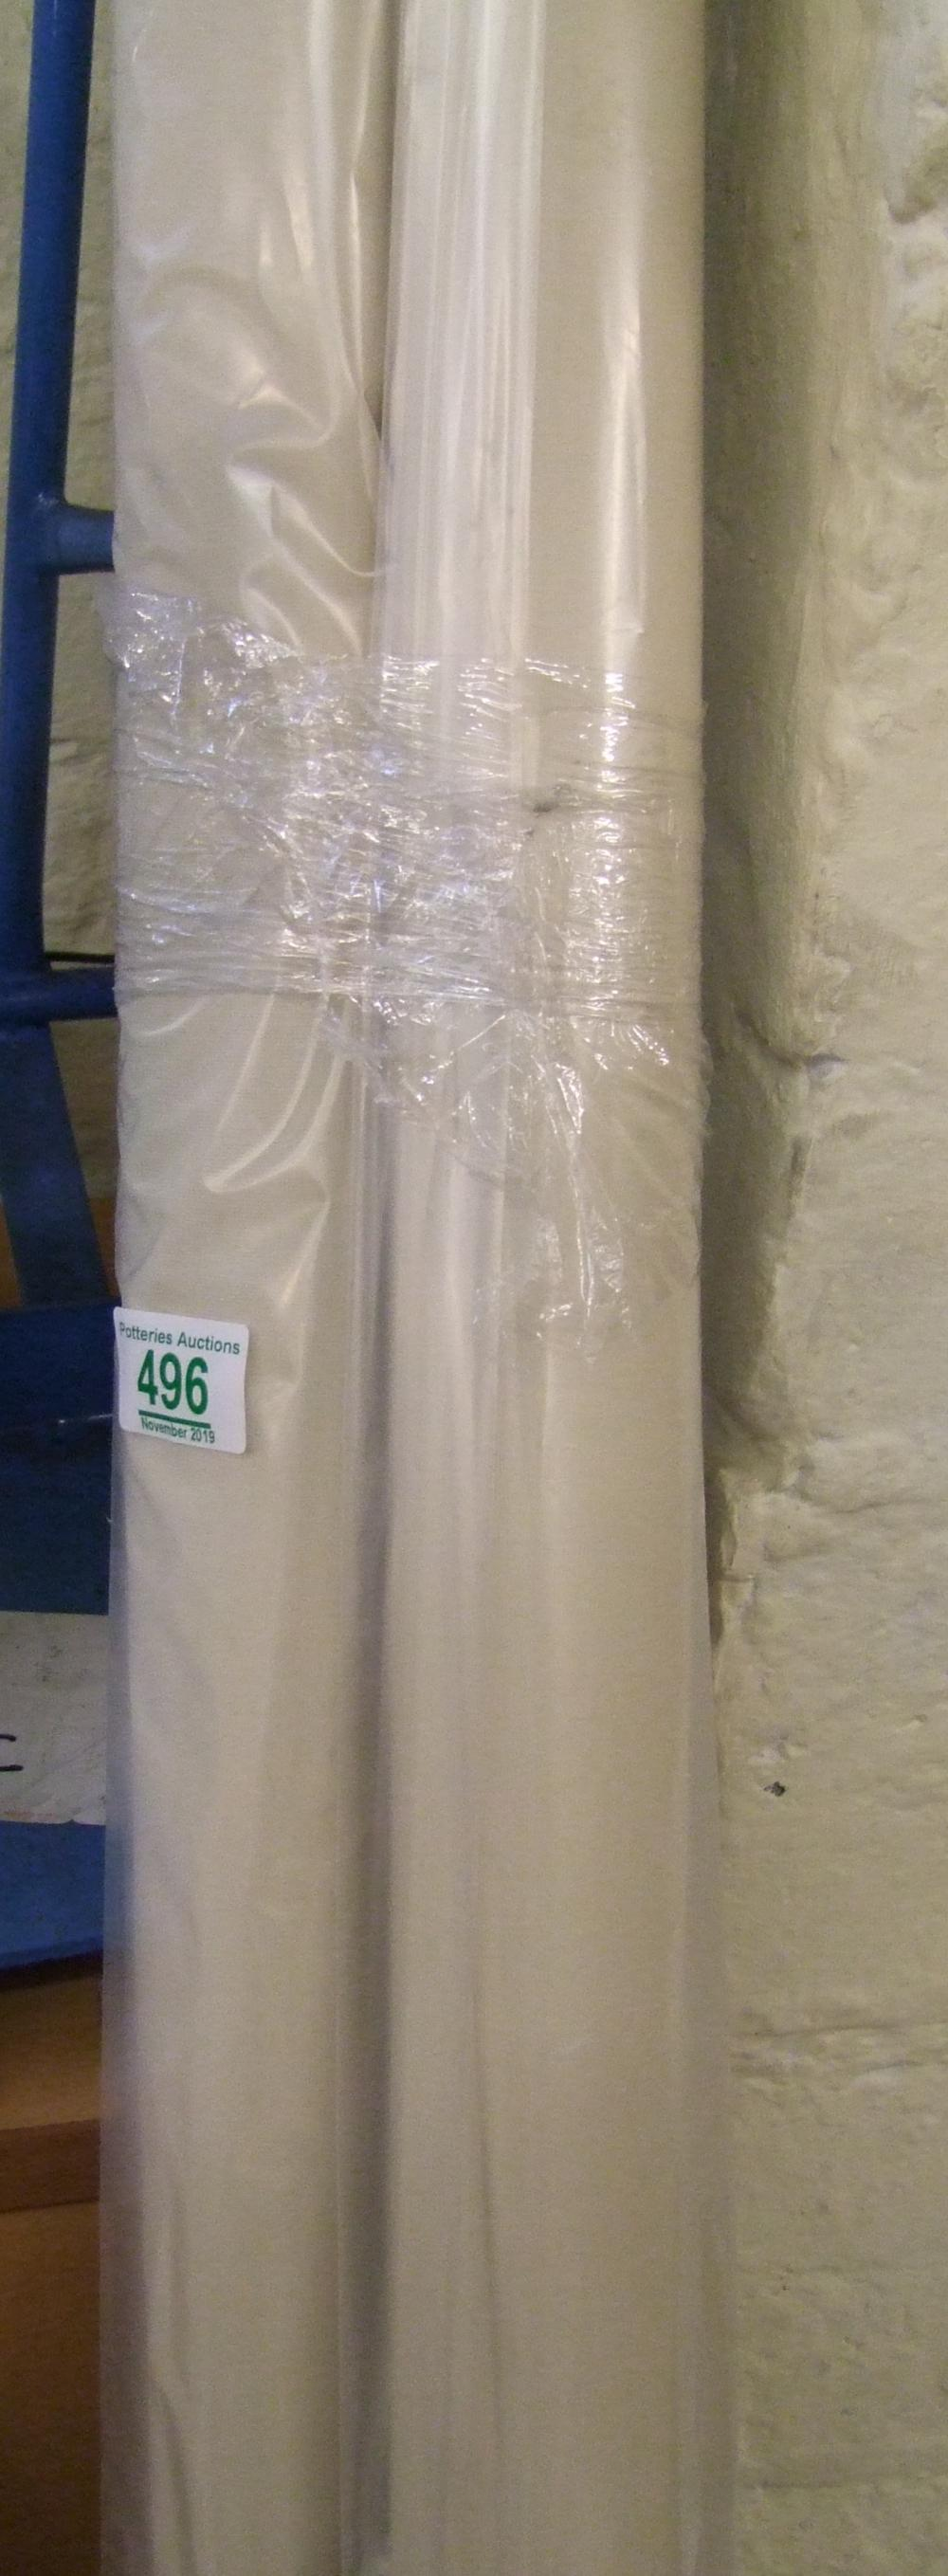 Lot 496 - 2 cream roller blinds: 2588mm x 1780mm and 1372mm x 1930mm.